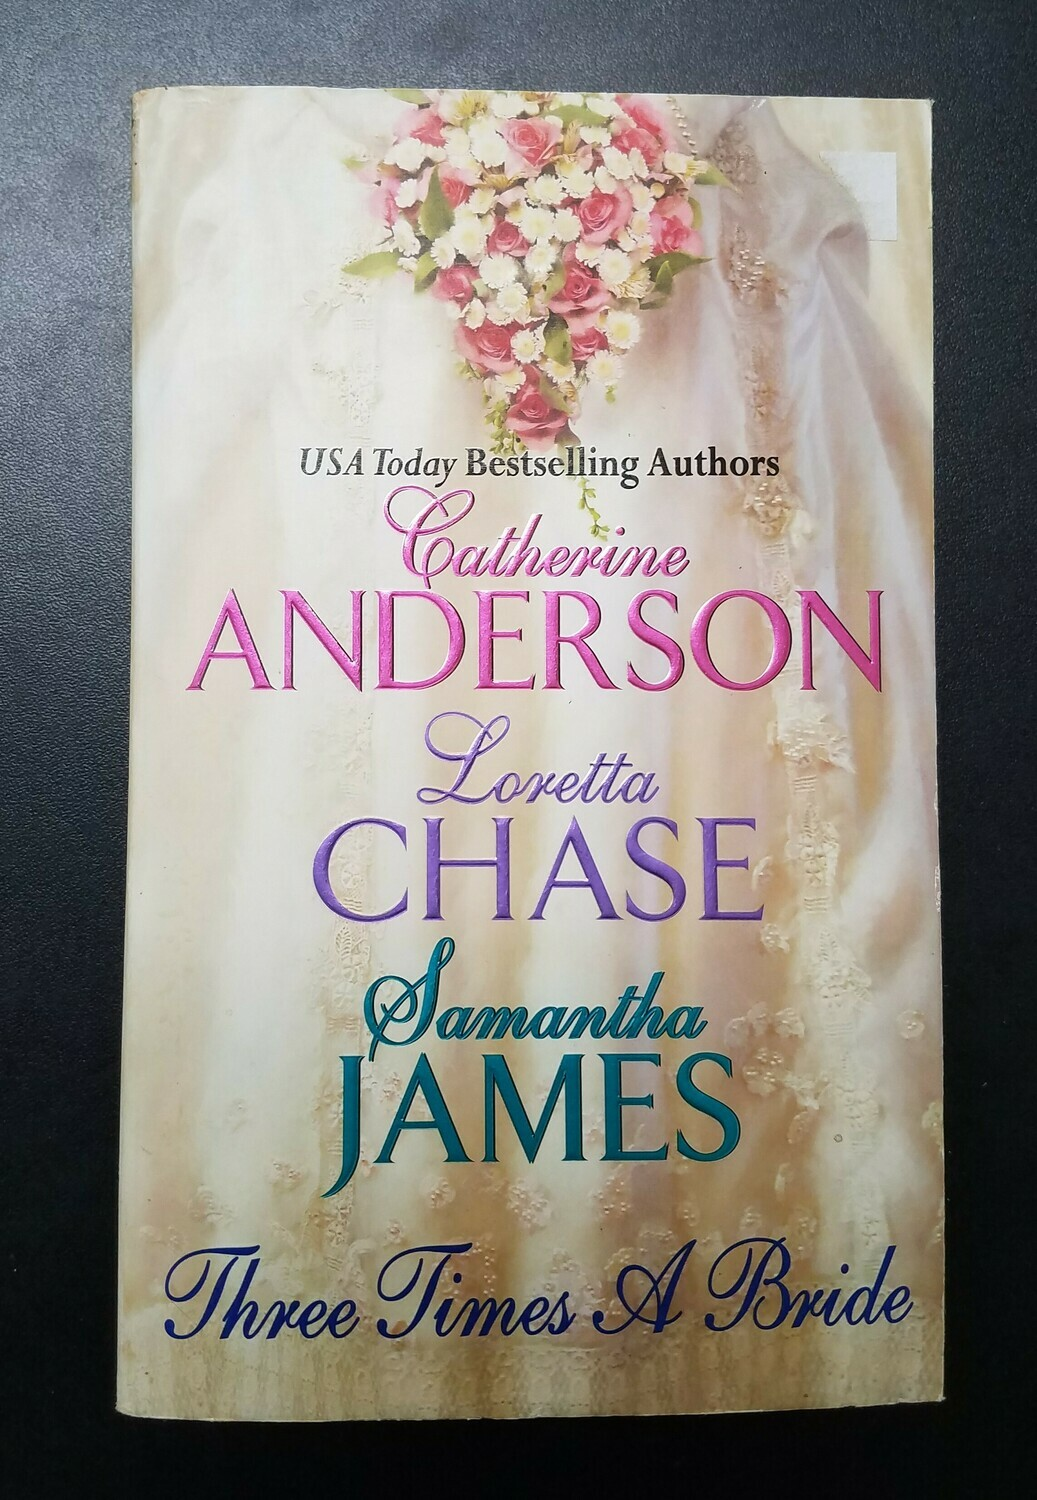 Three Times a Bride by Catherine Anderson, Loretta Chase, and Samantha James